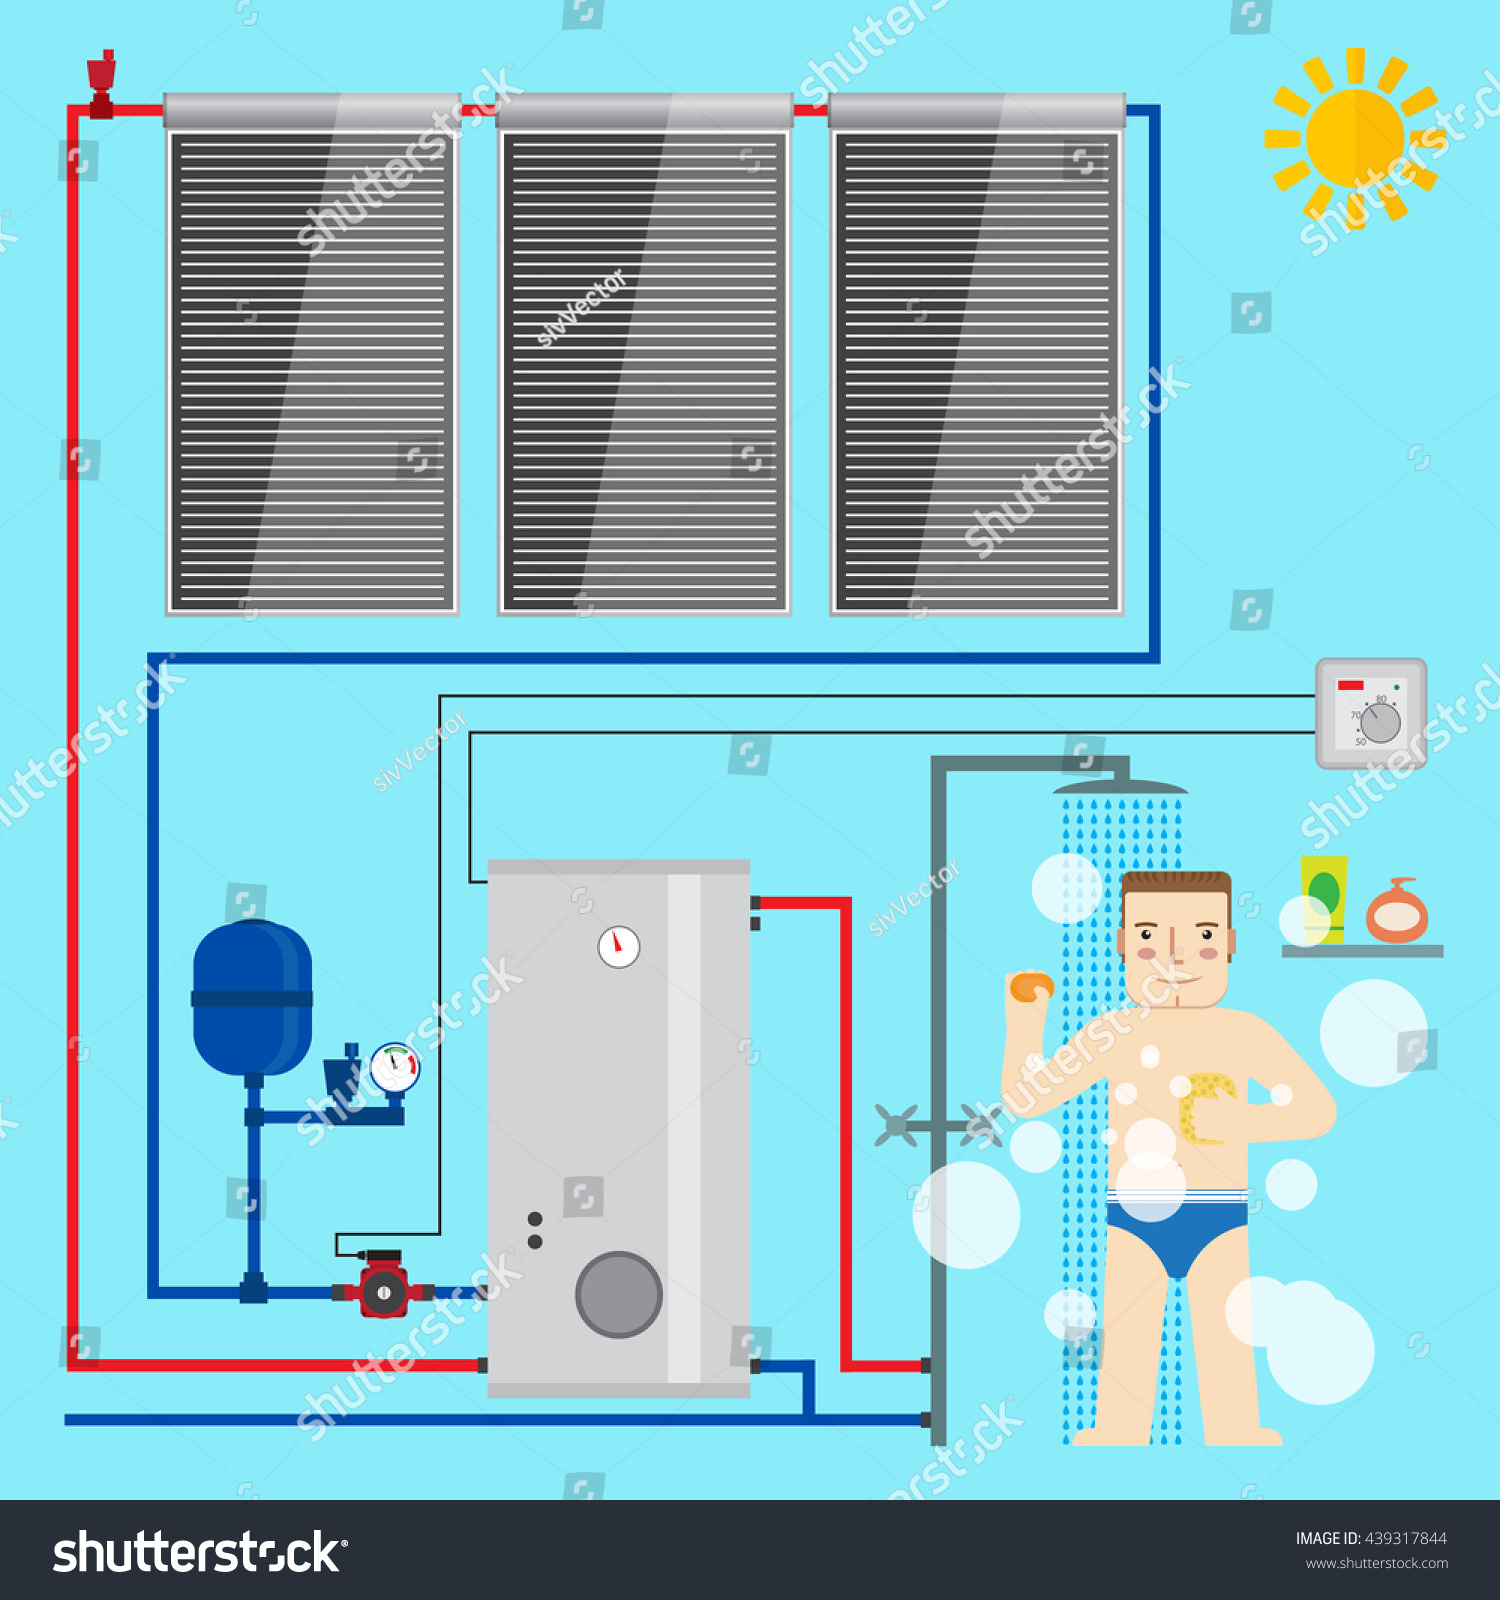 Solar Shower Diagram - Car Wiring Diagrams Explained •